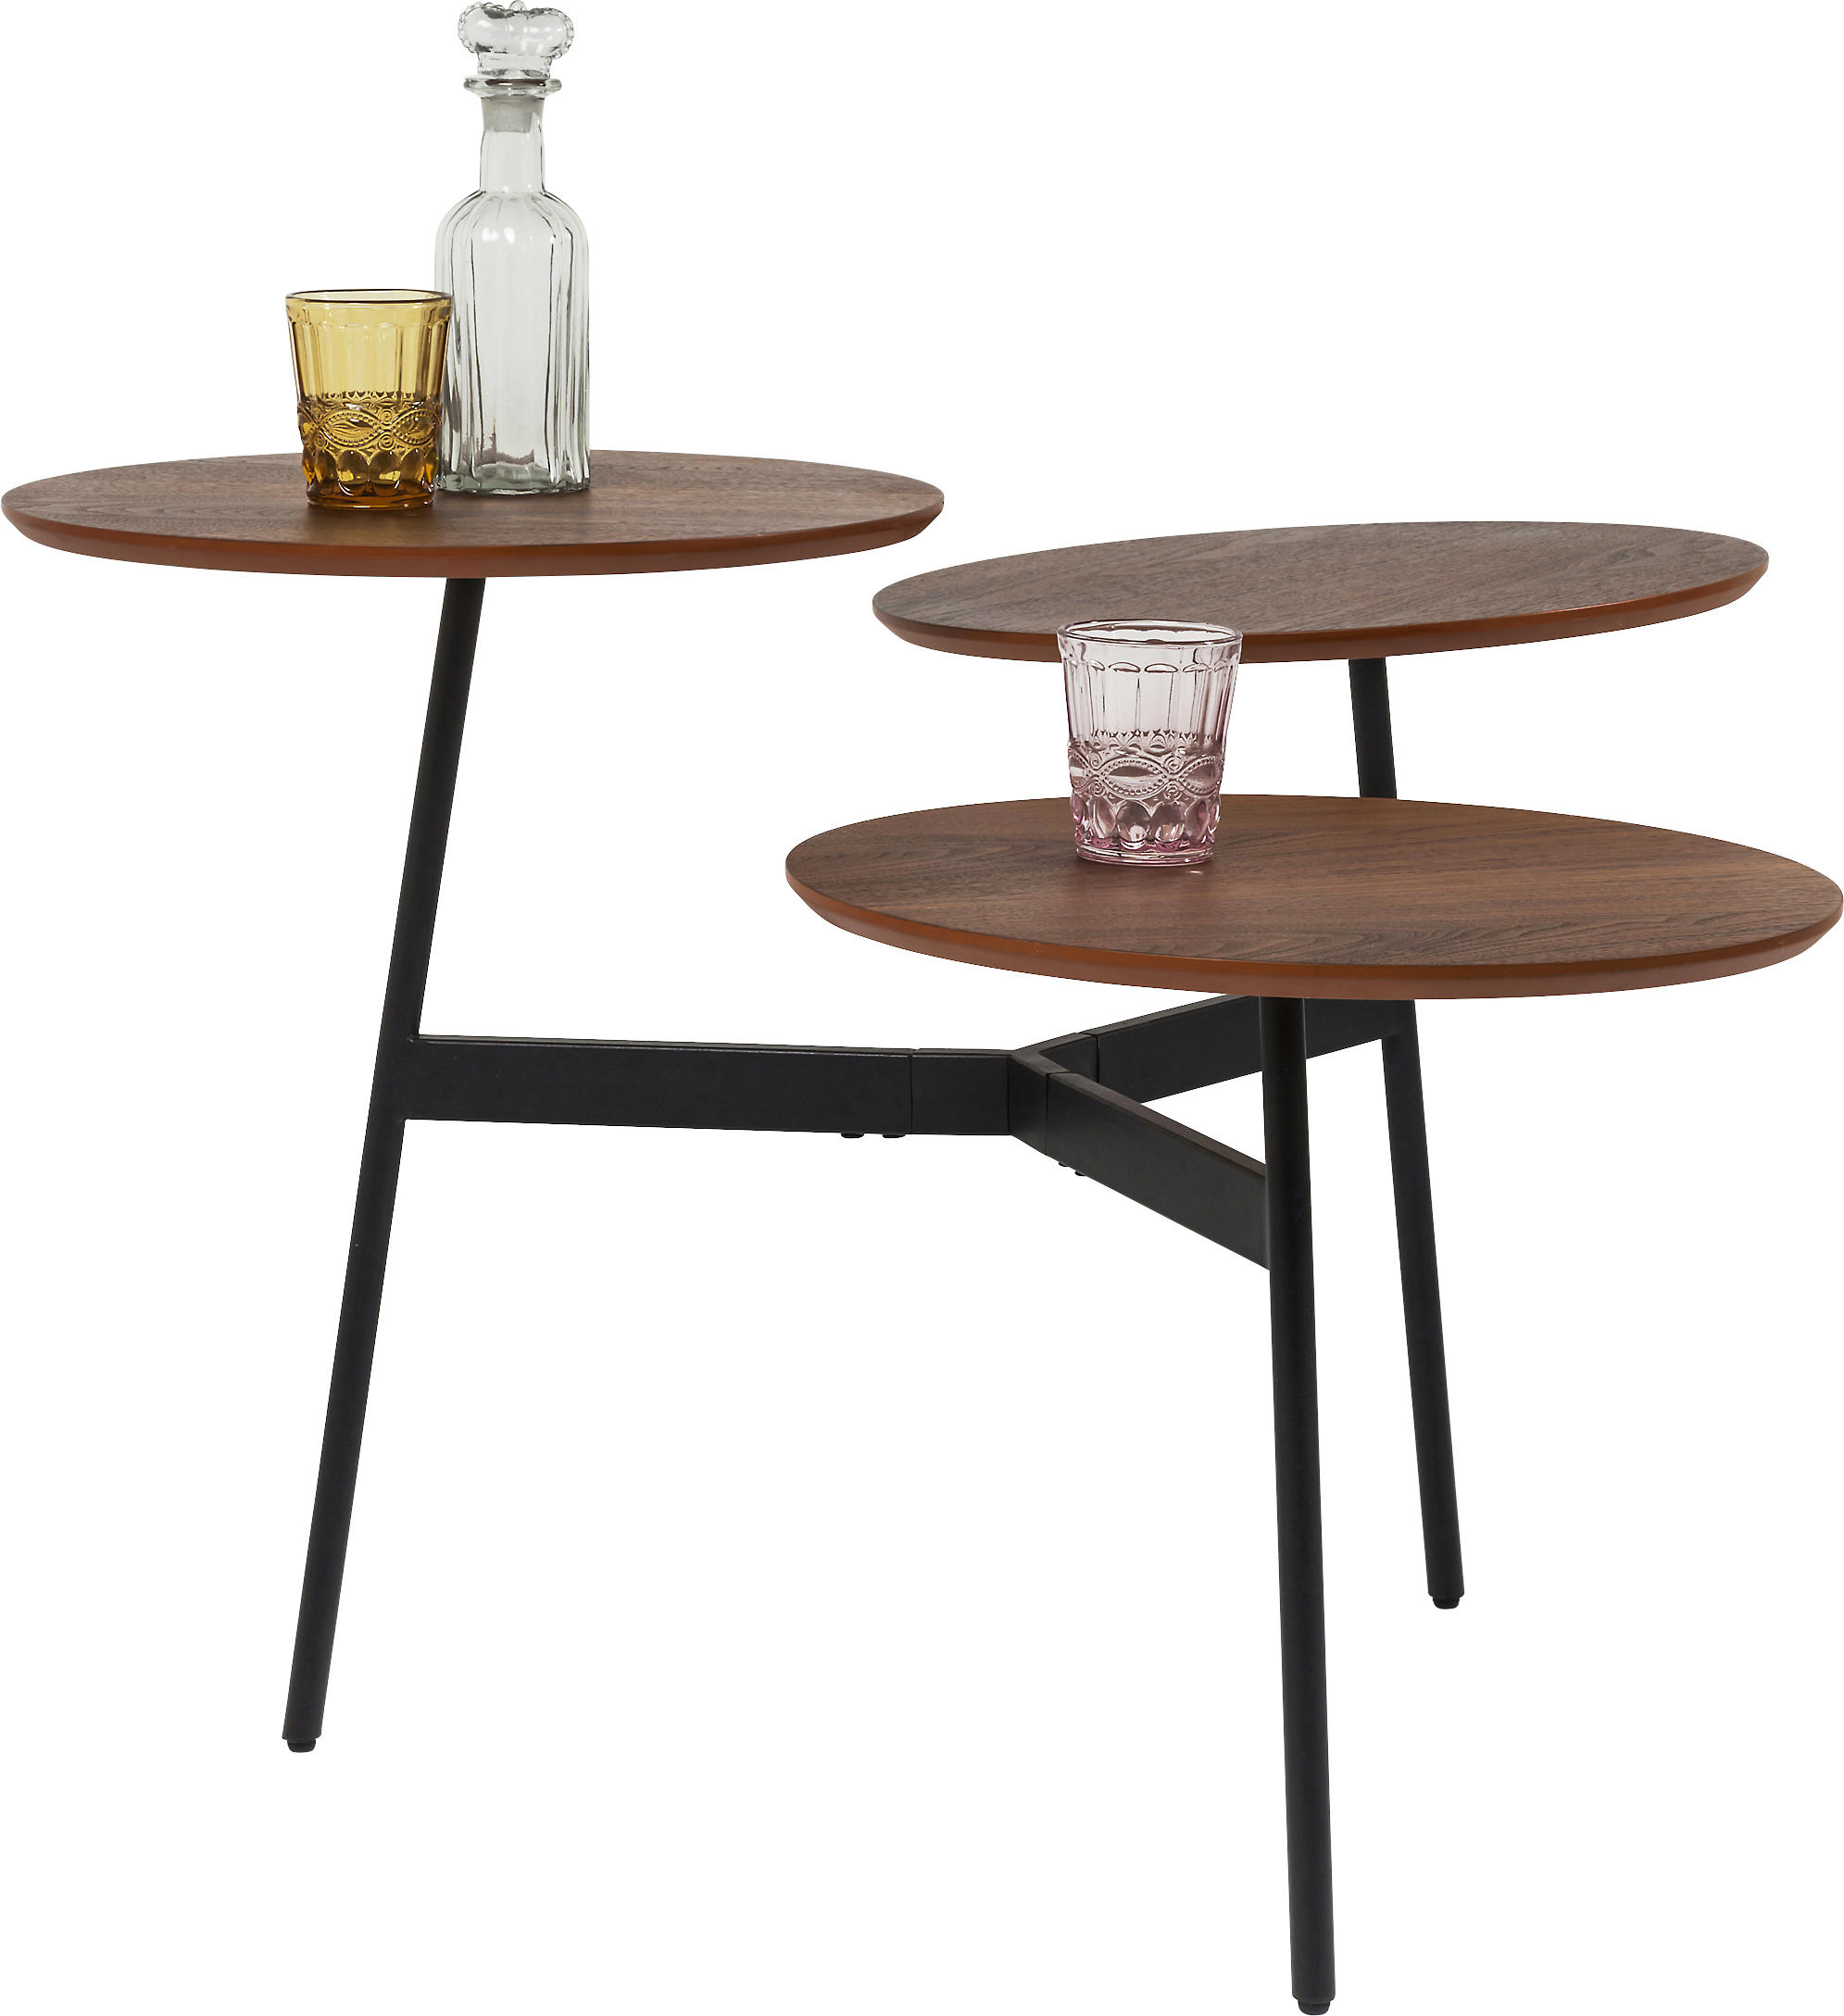 KARE_Coffee Tables